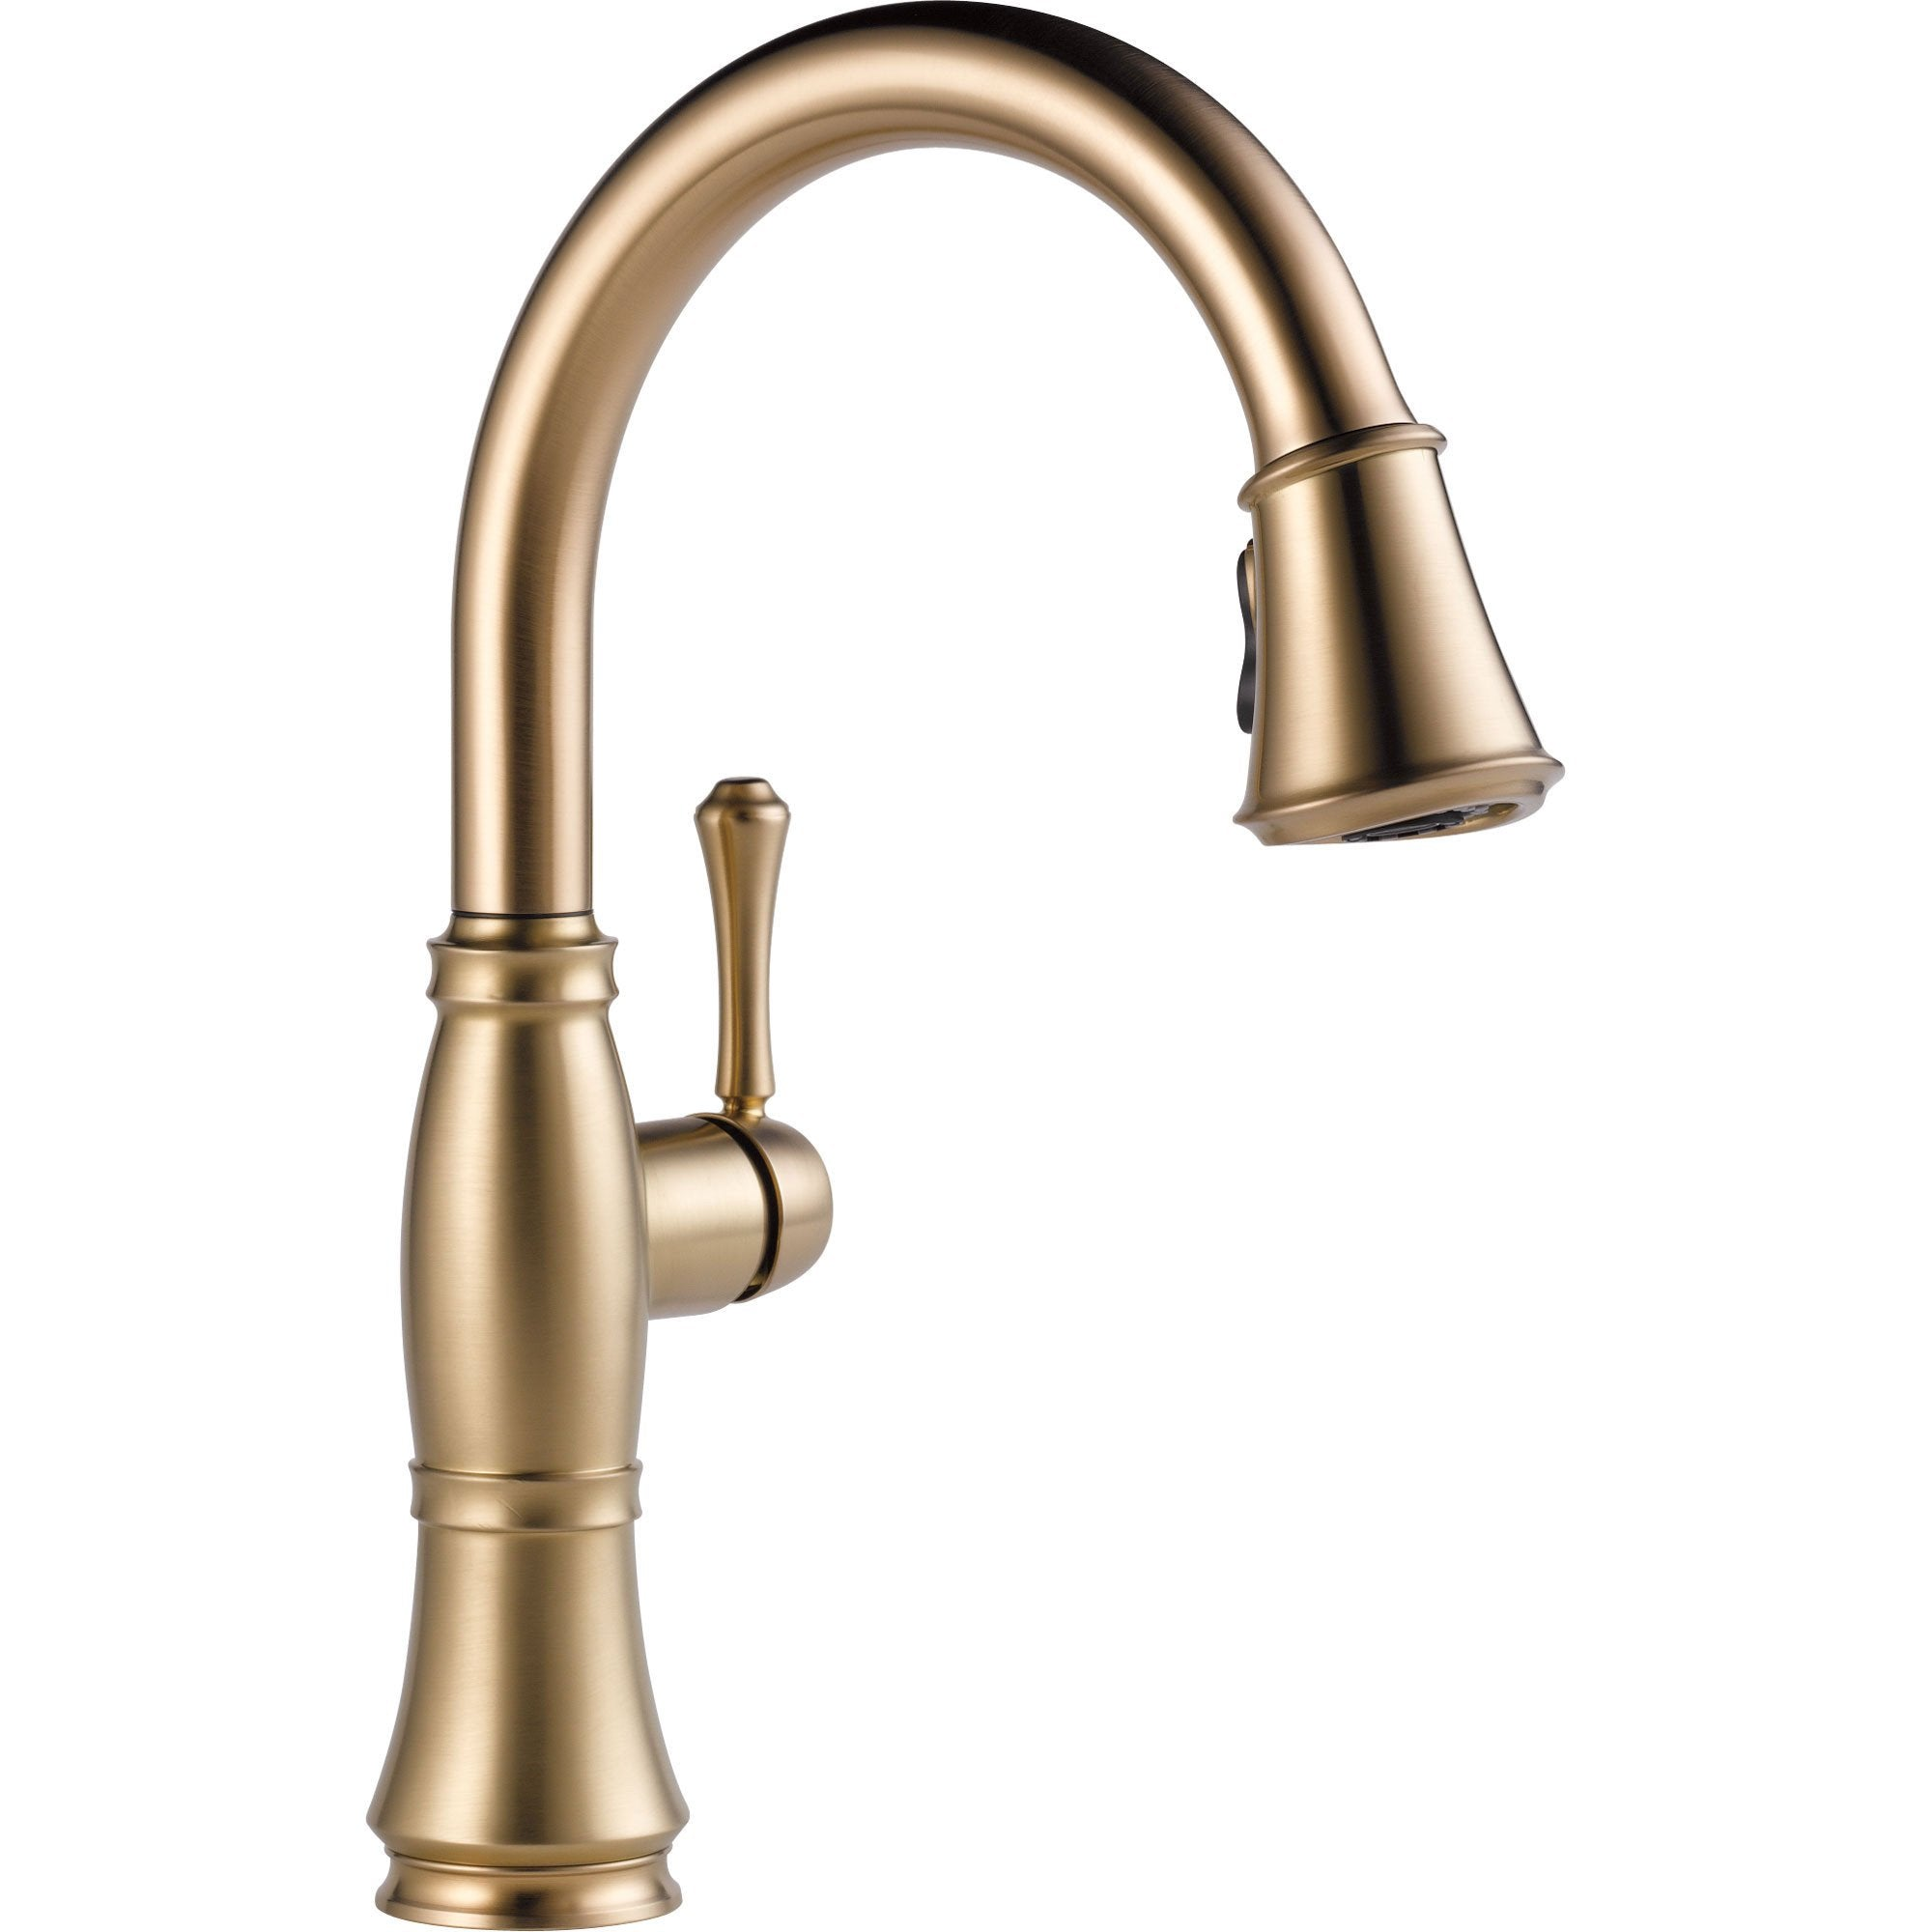 Delta Cassidy Champagne Bronze Finish Pull-Down Sprayer Kitchen Faucet 579590